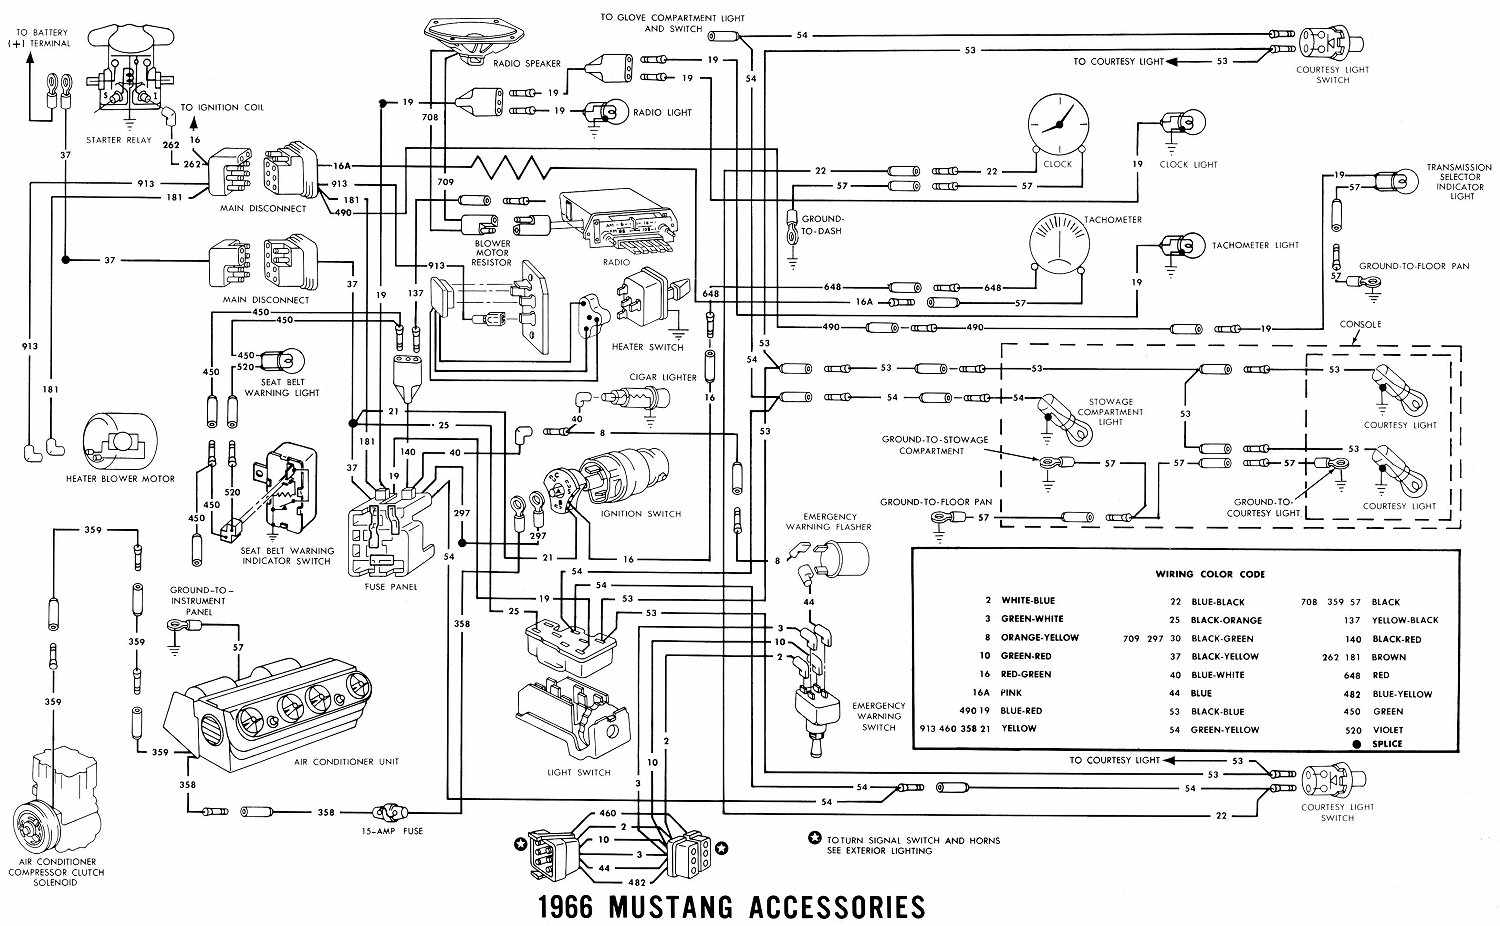 1992 ford mustang radio wiring diagram